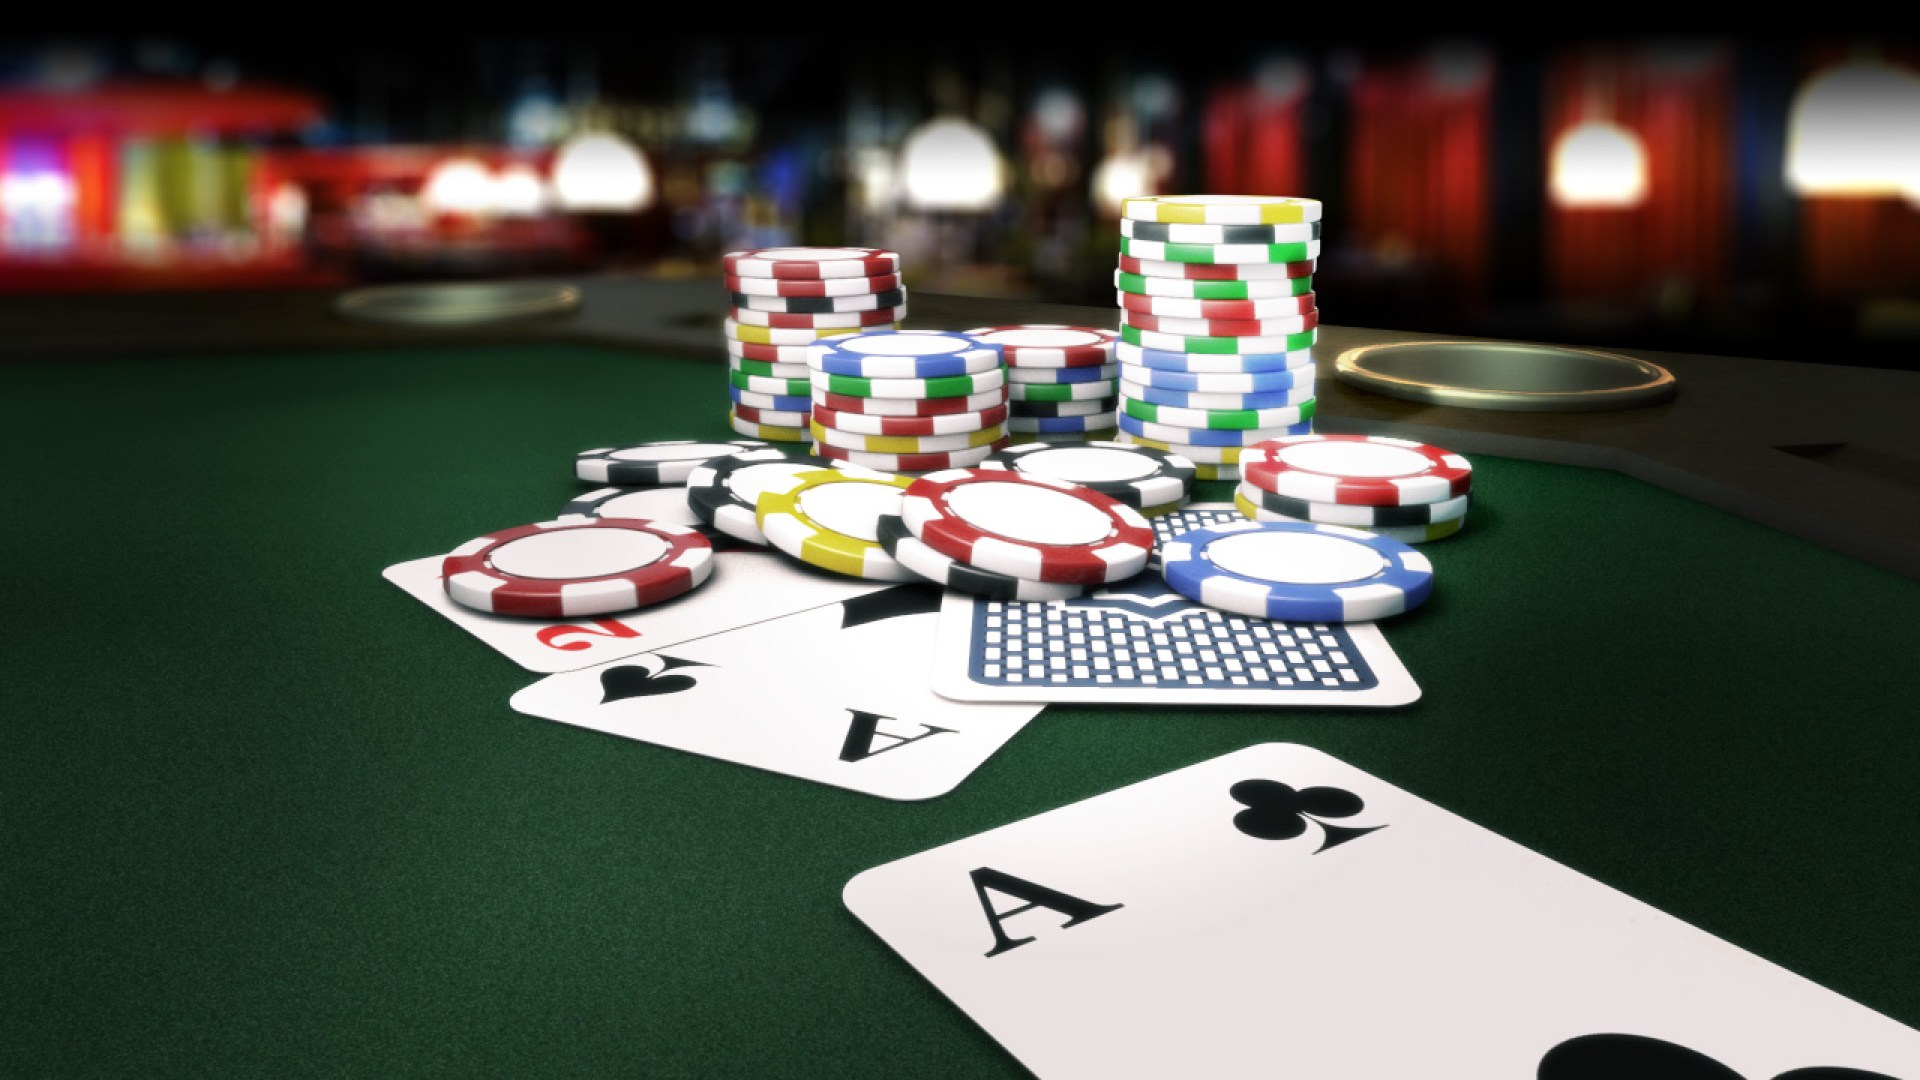 Why one2kick is the best poker site for beginners?